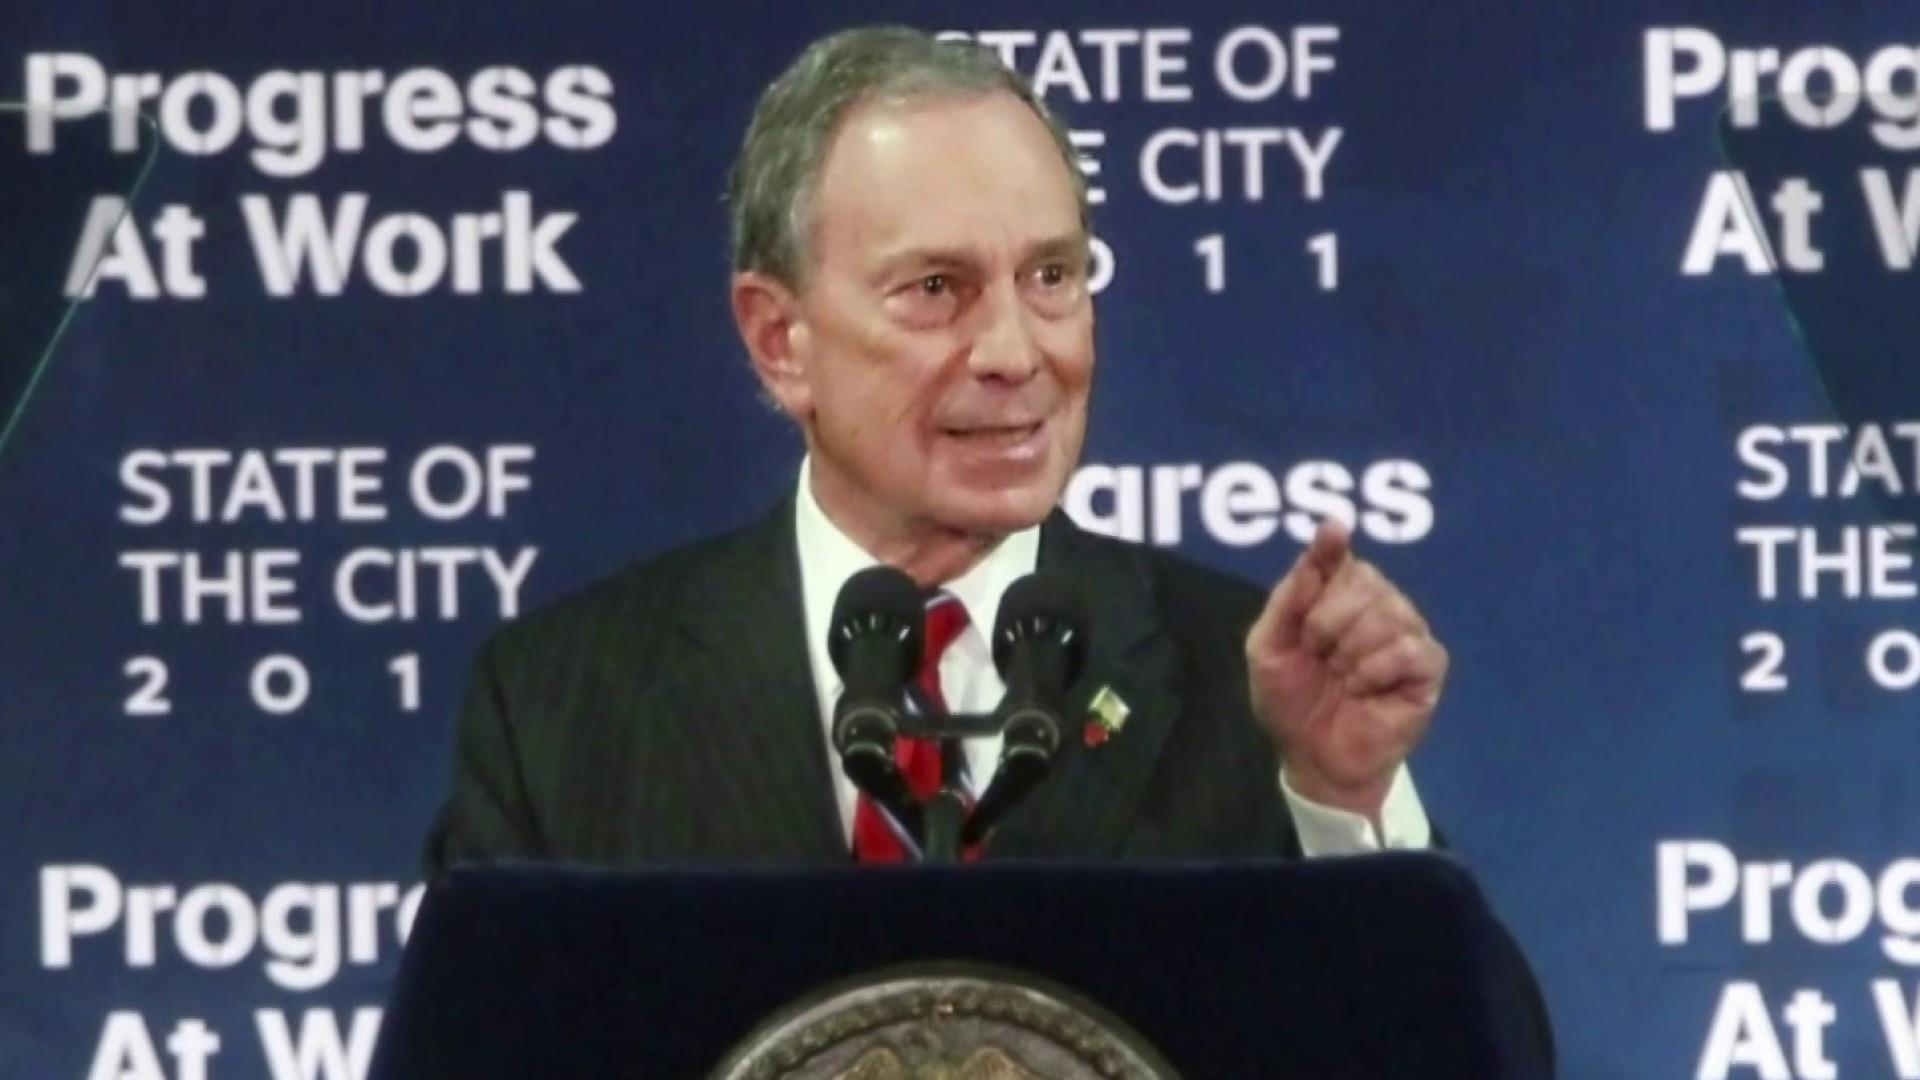 Bloomberg apologizes for controversial police practice ahead of potential 2020 run